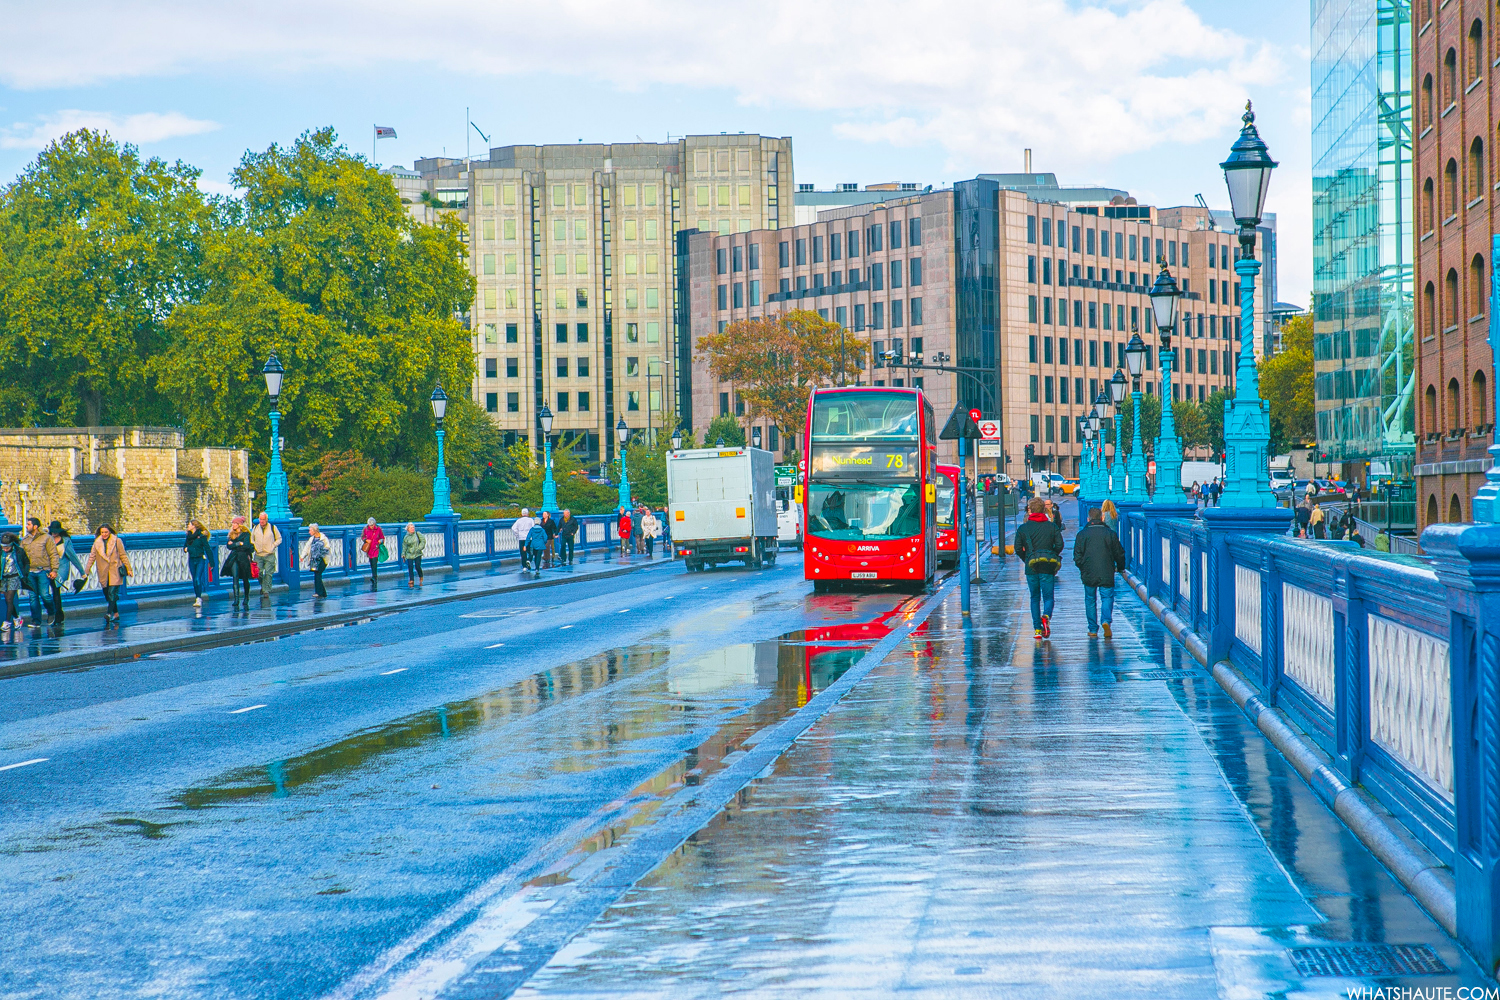 Tower Bridge after the rain - London, England, What's Haute in the World